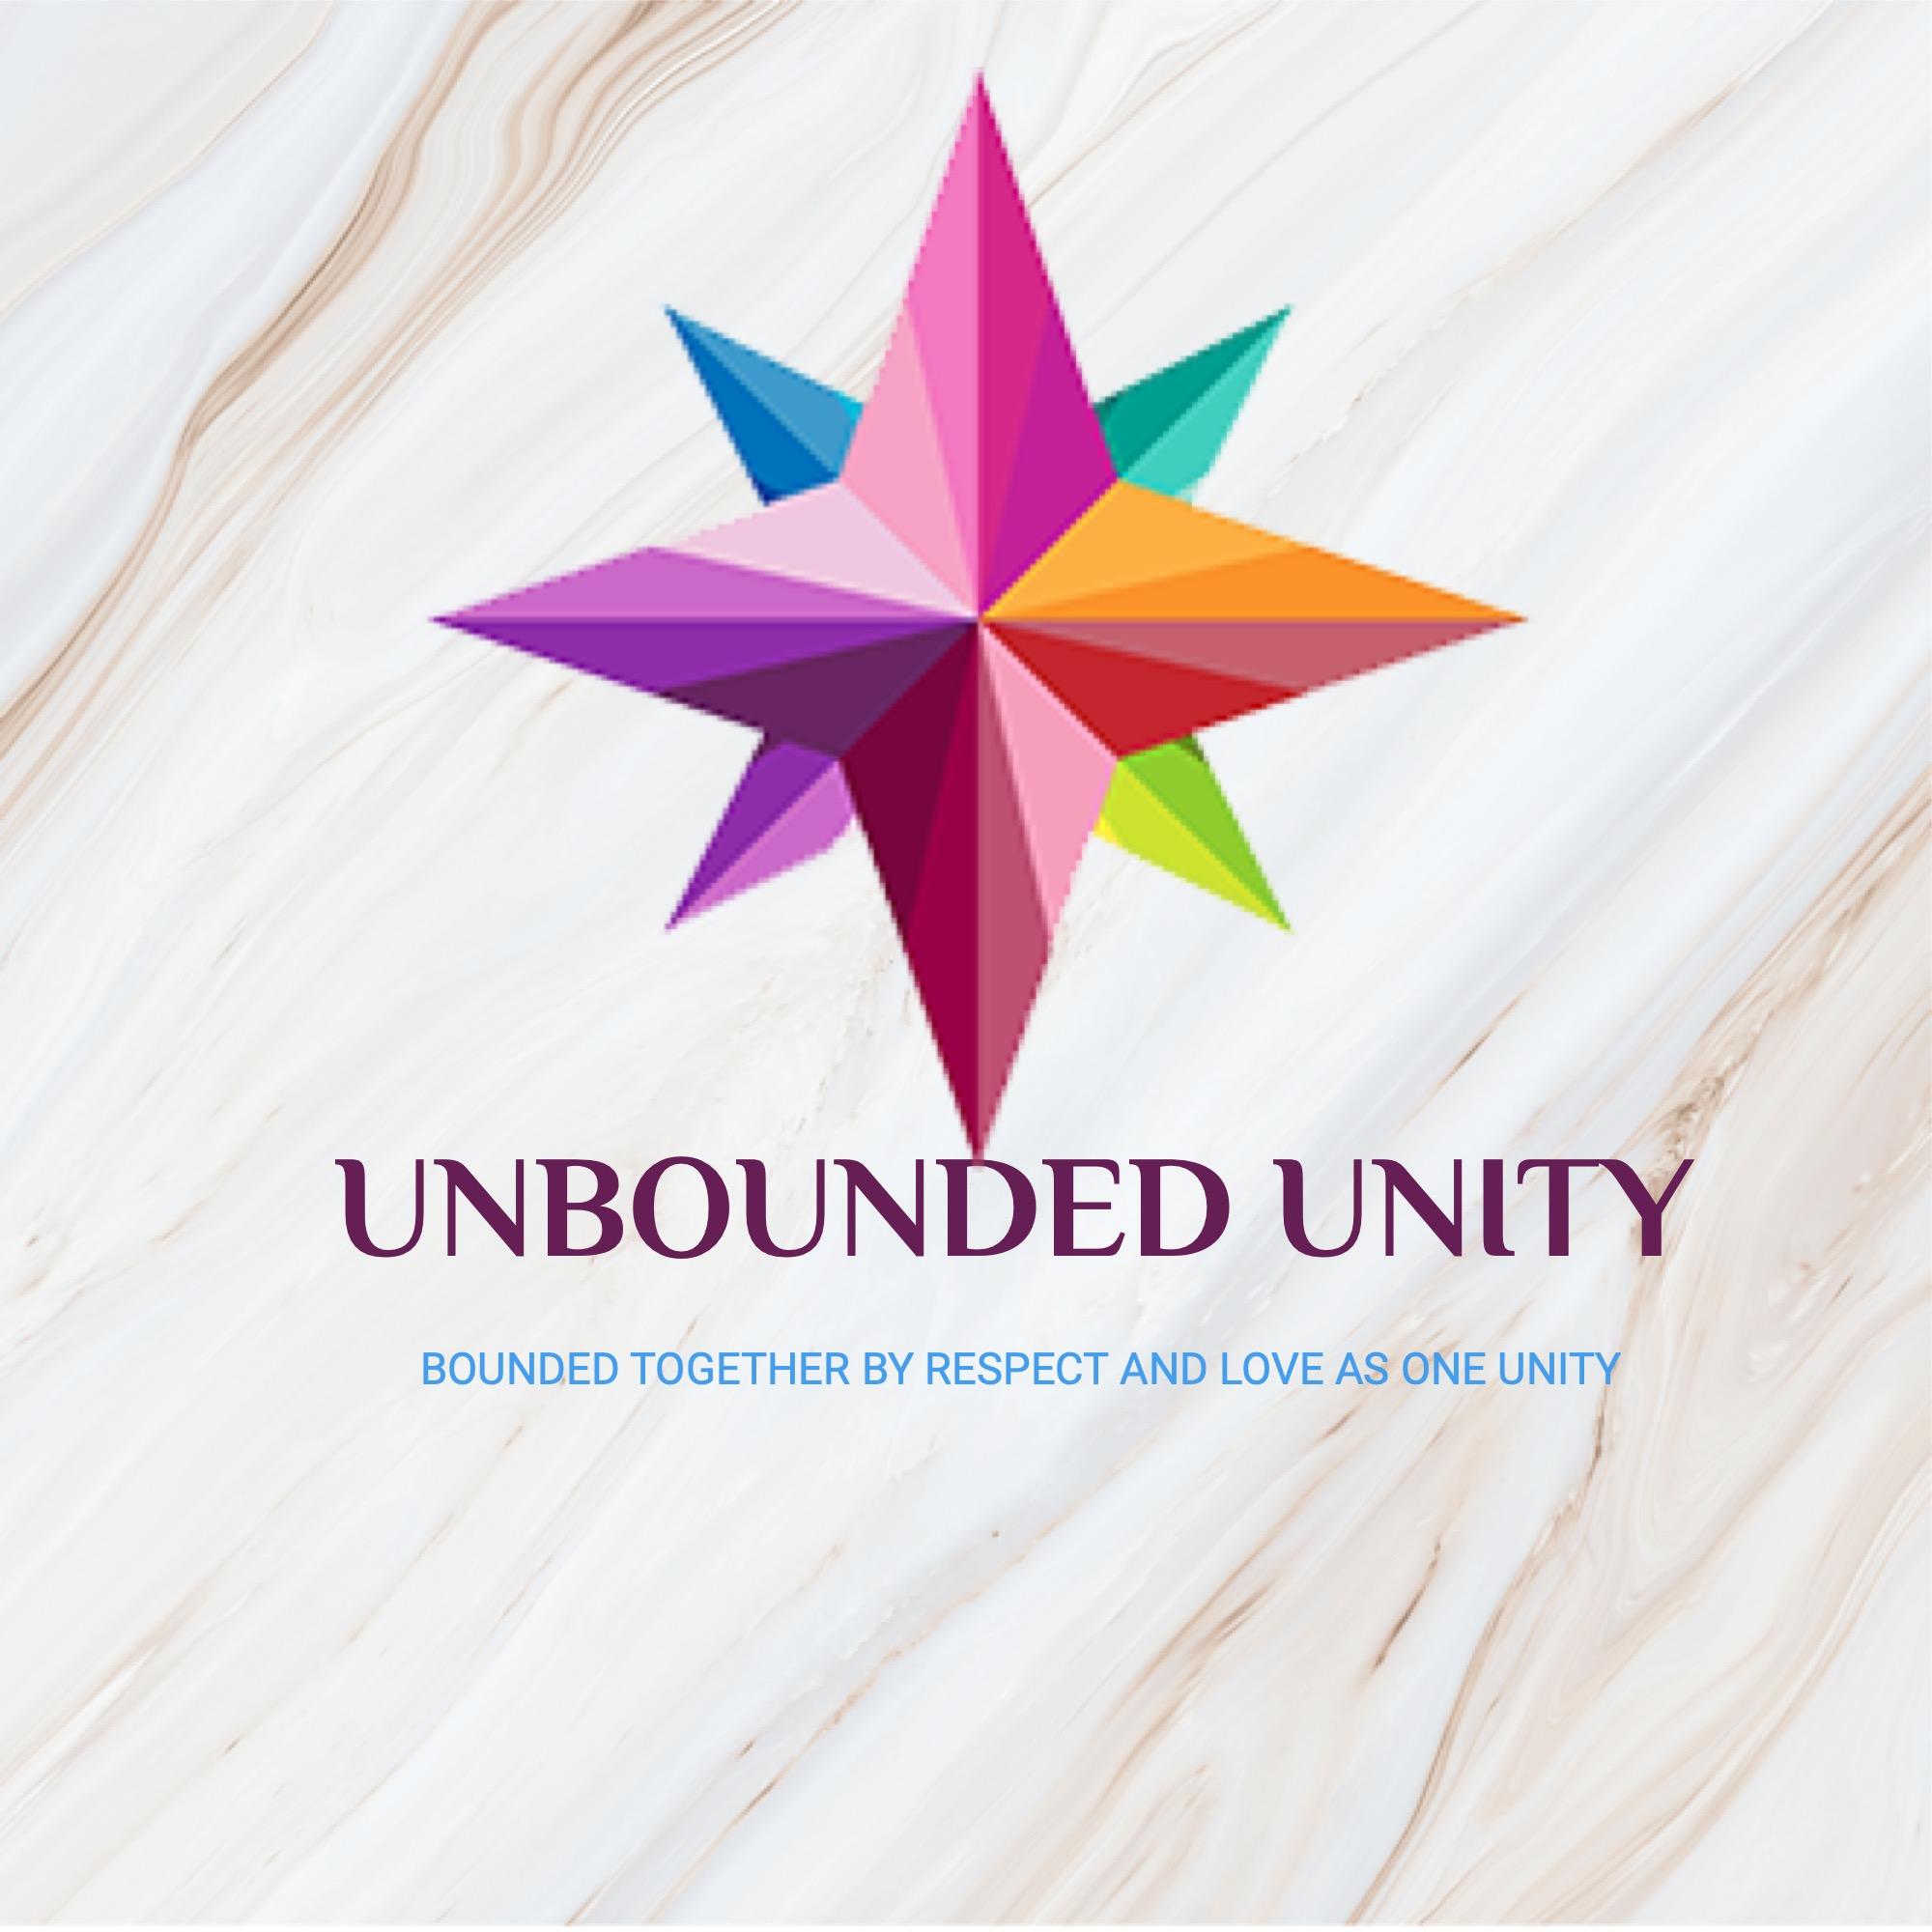 UNBOUNDED UNITY LLC